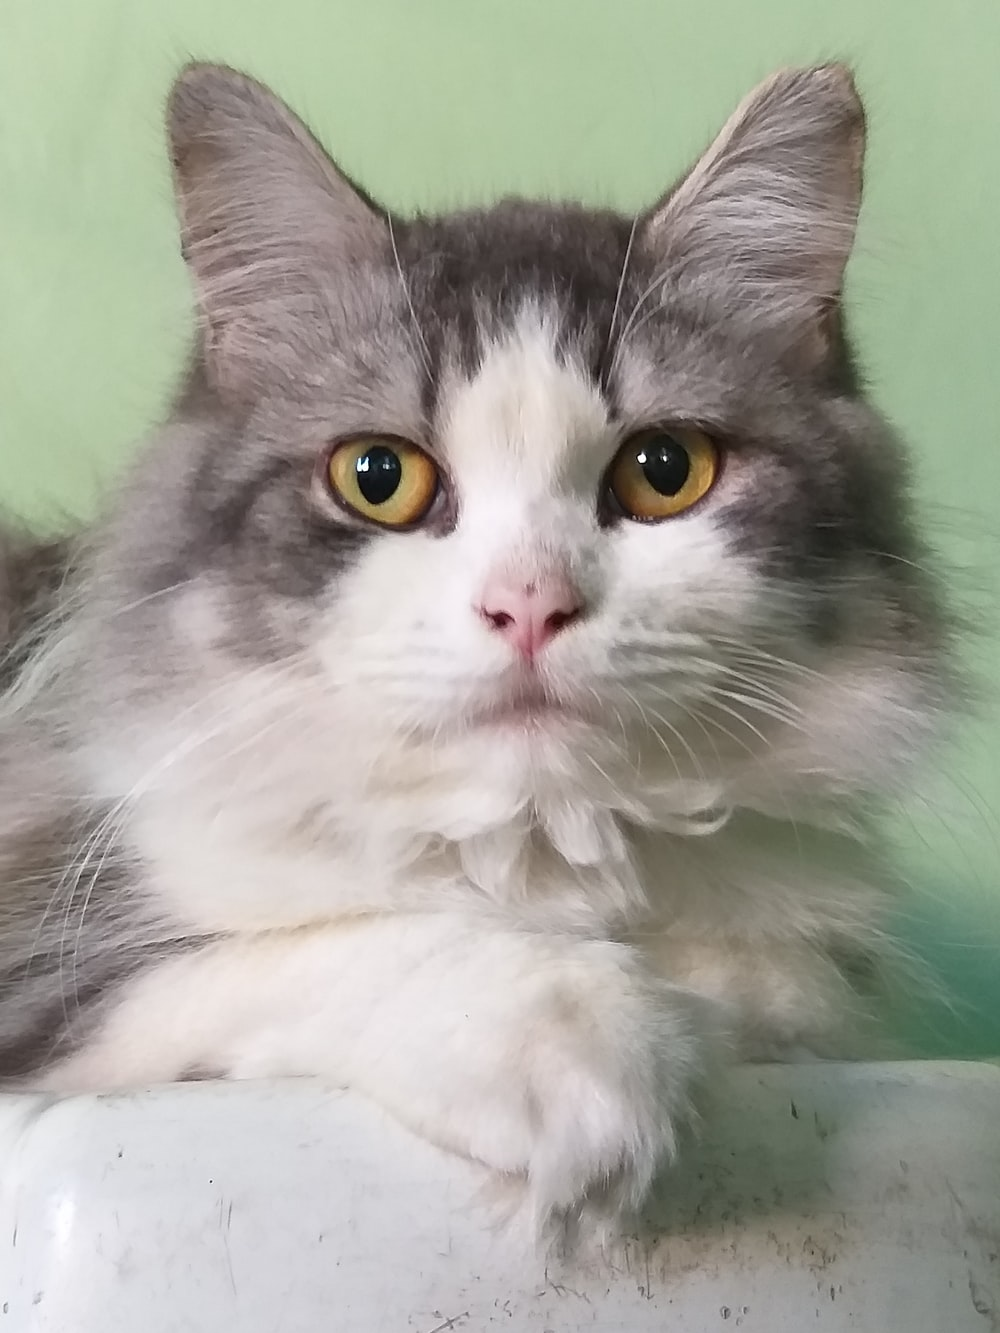 short-fur gray and white cat